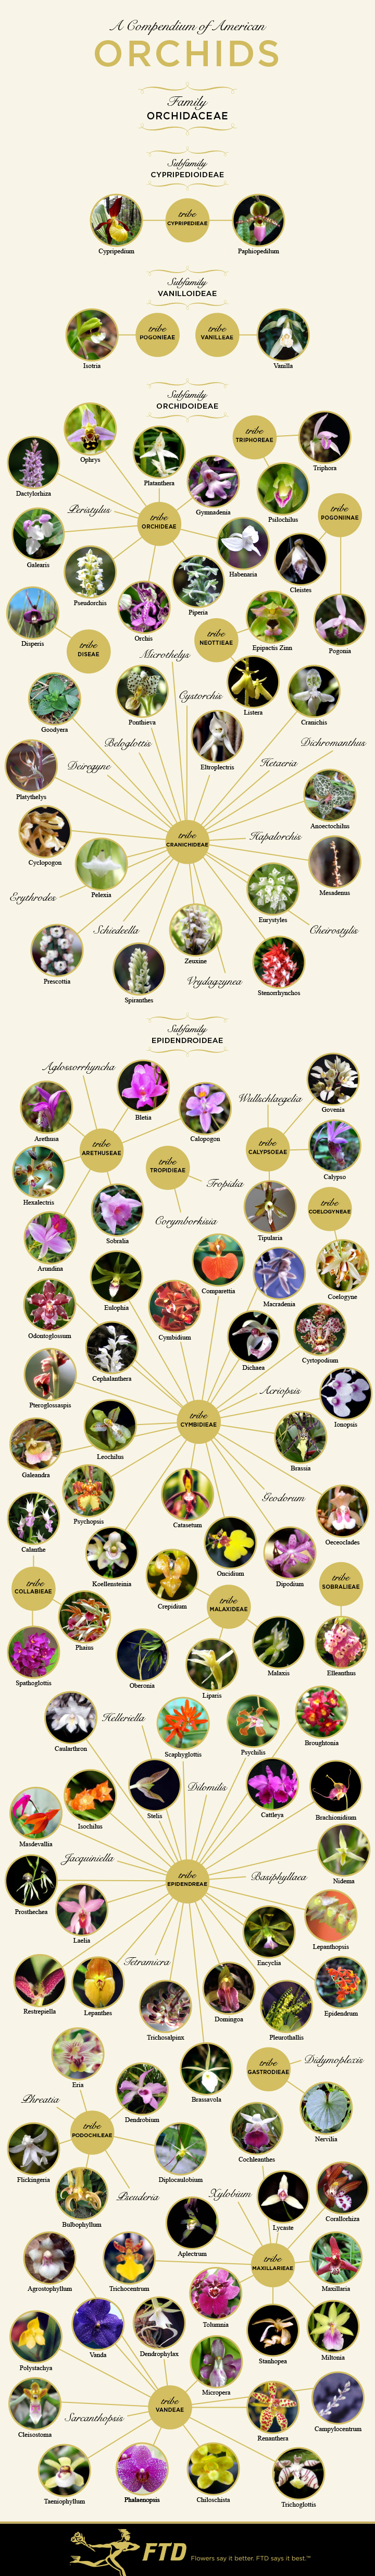 A Compendium of American Orchids